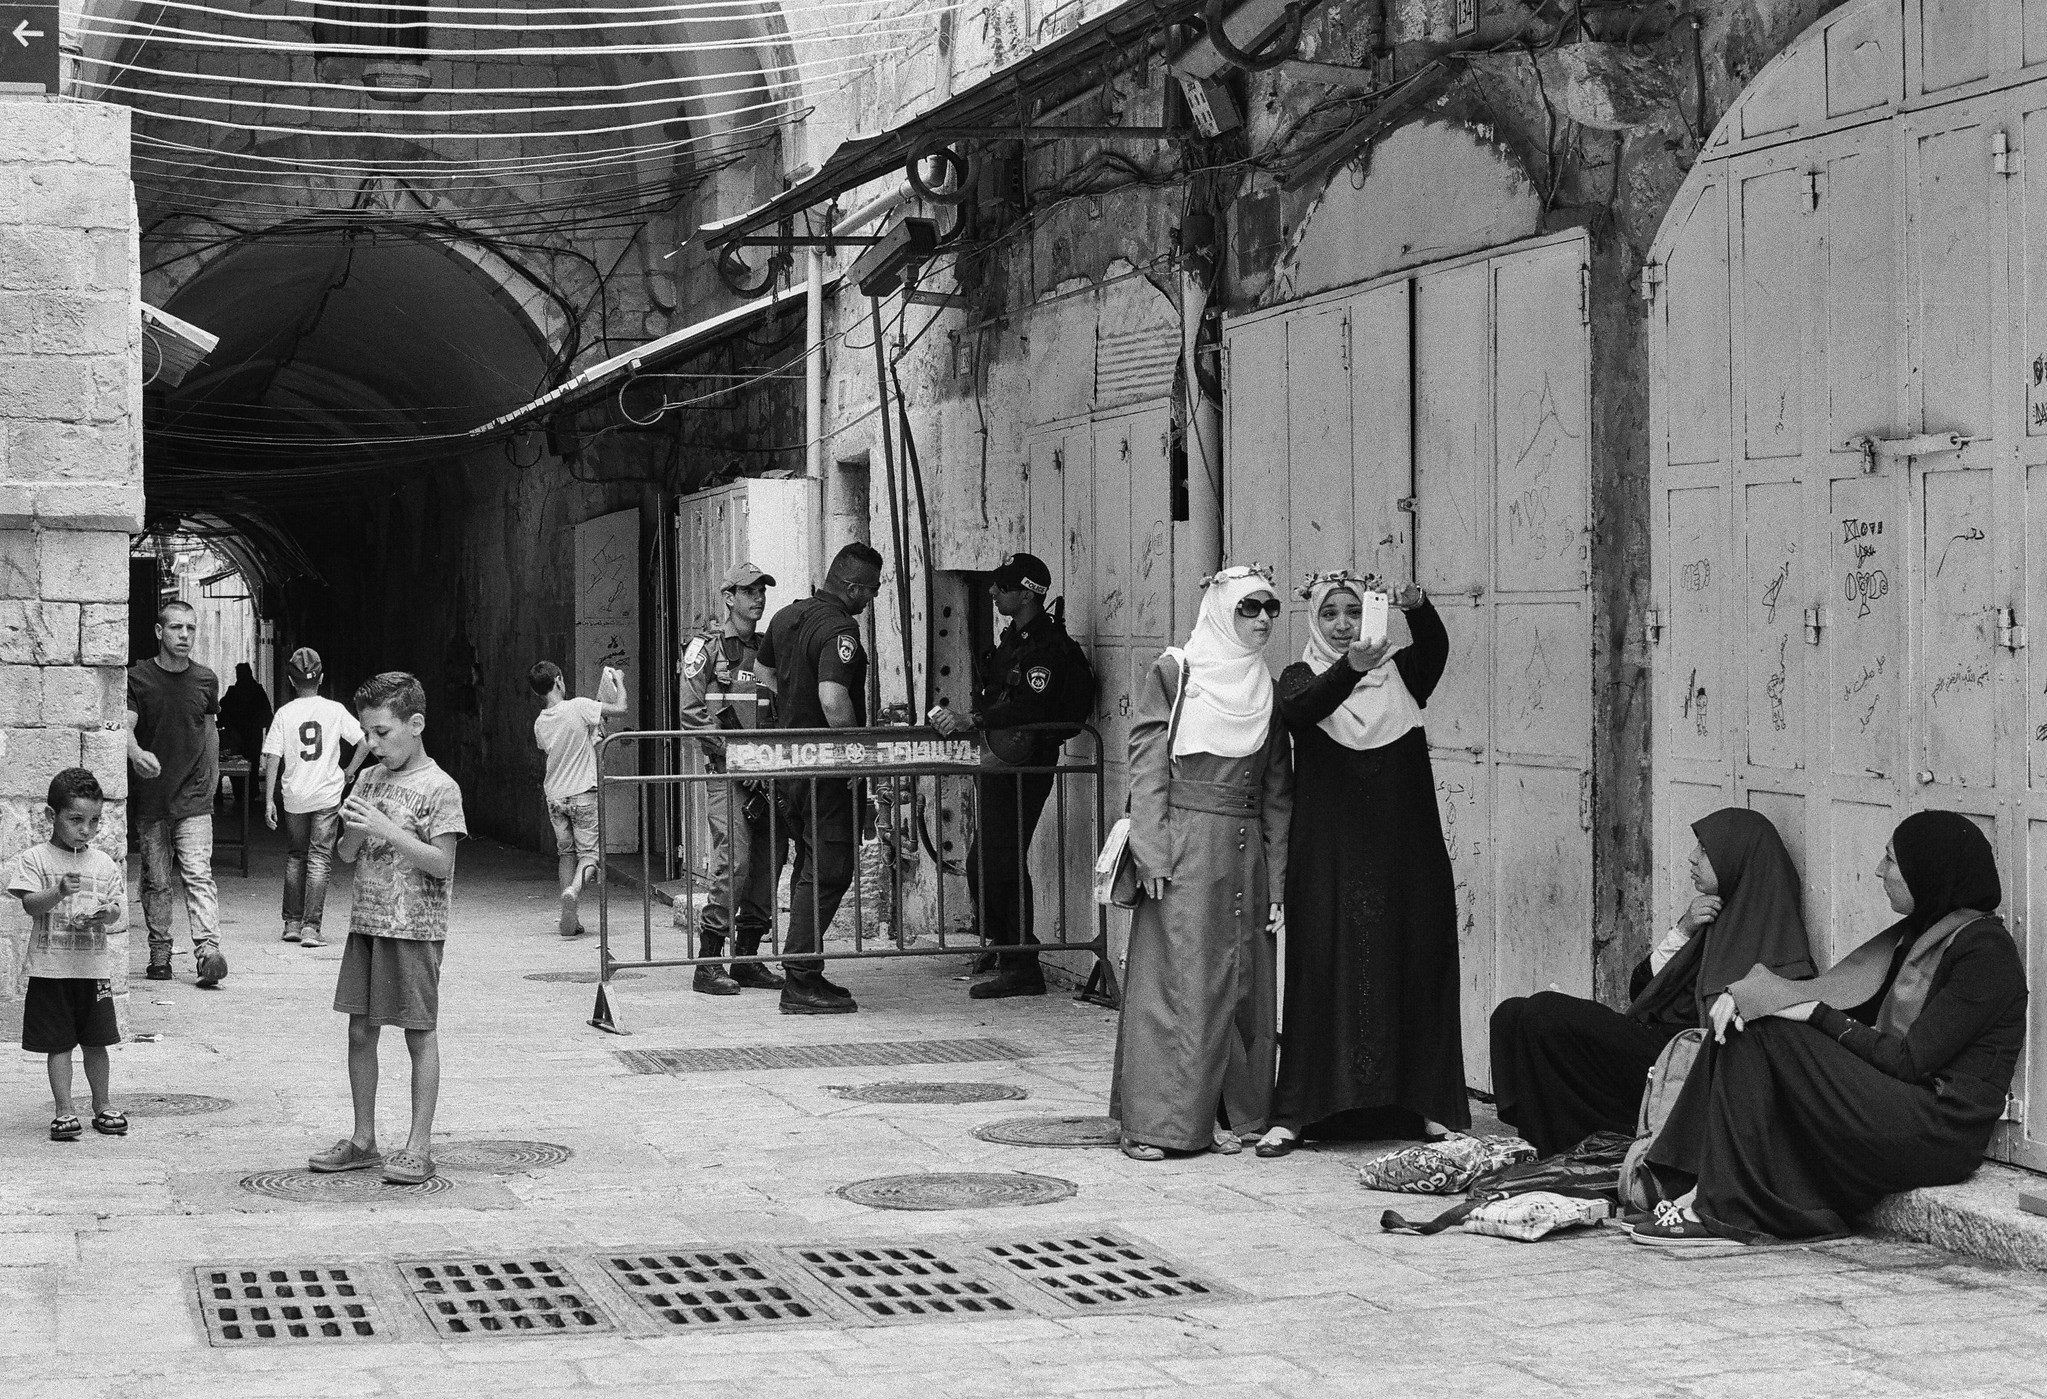 Life in the Old City